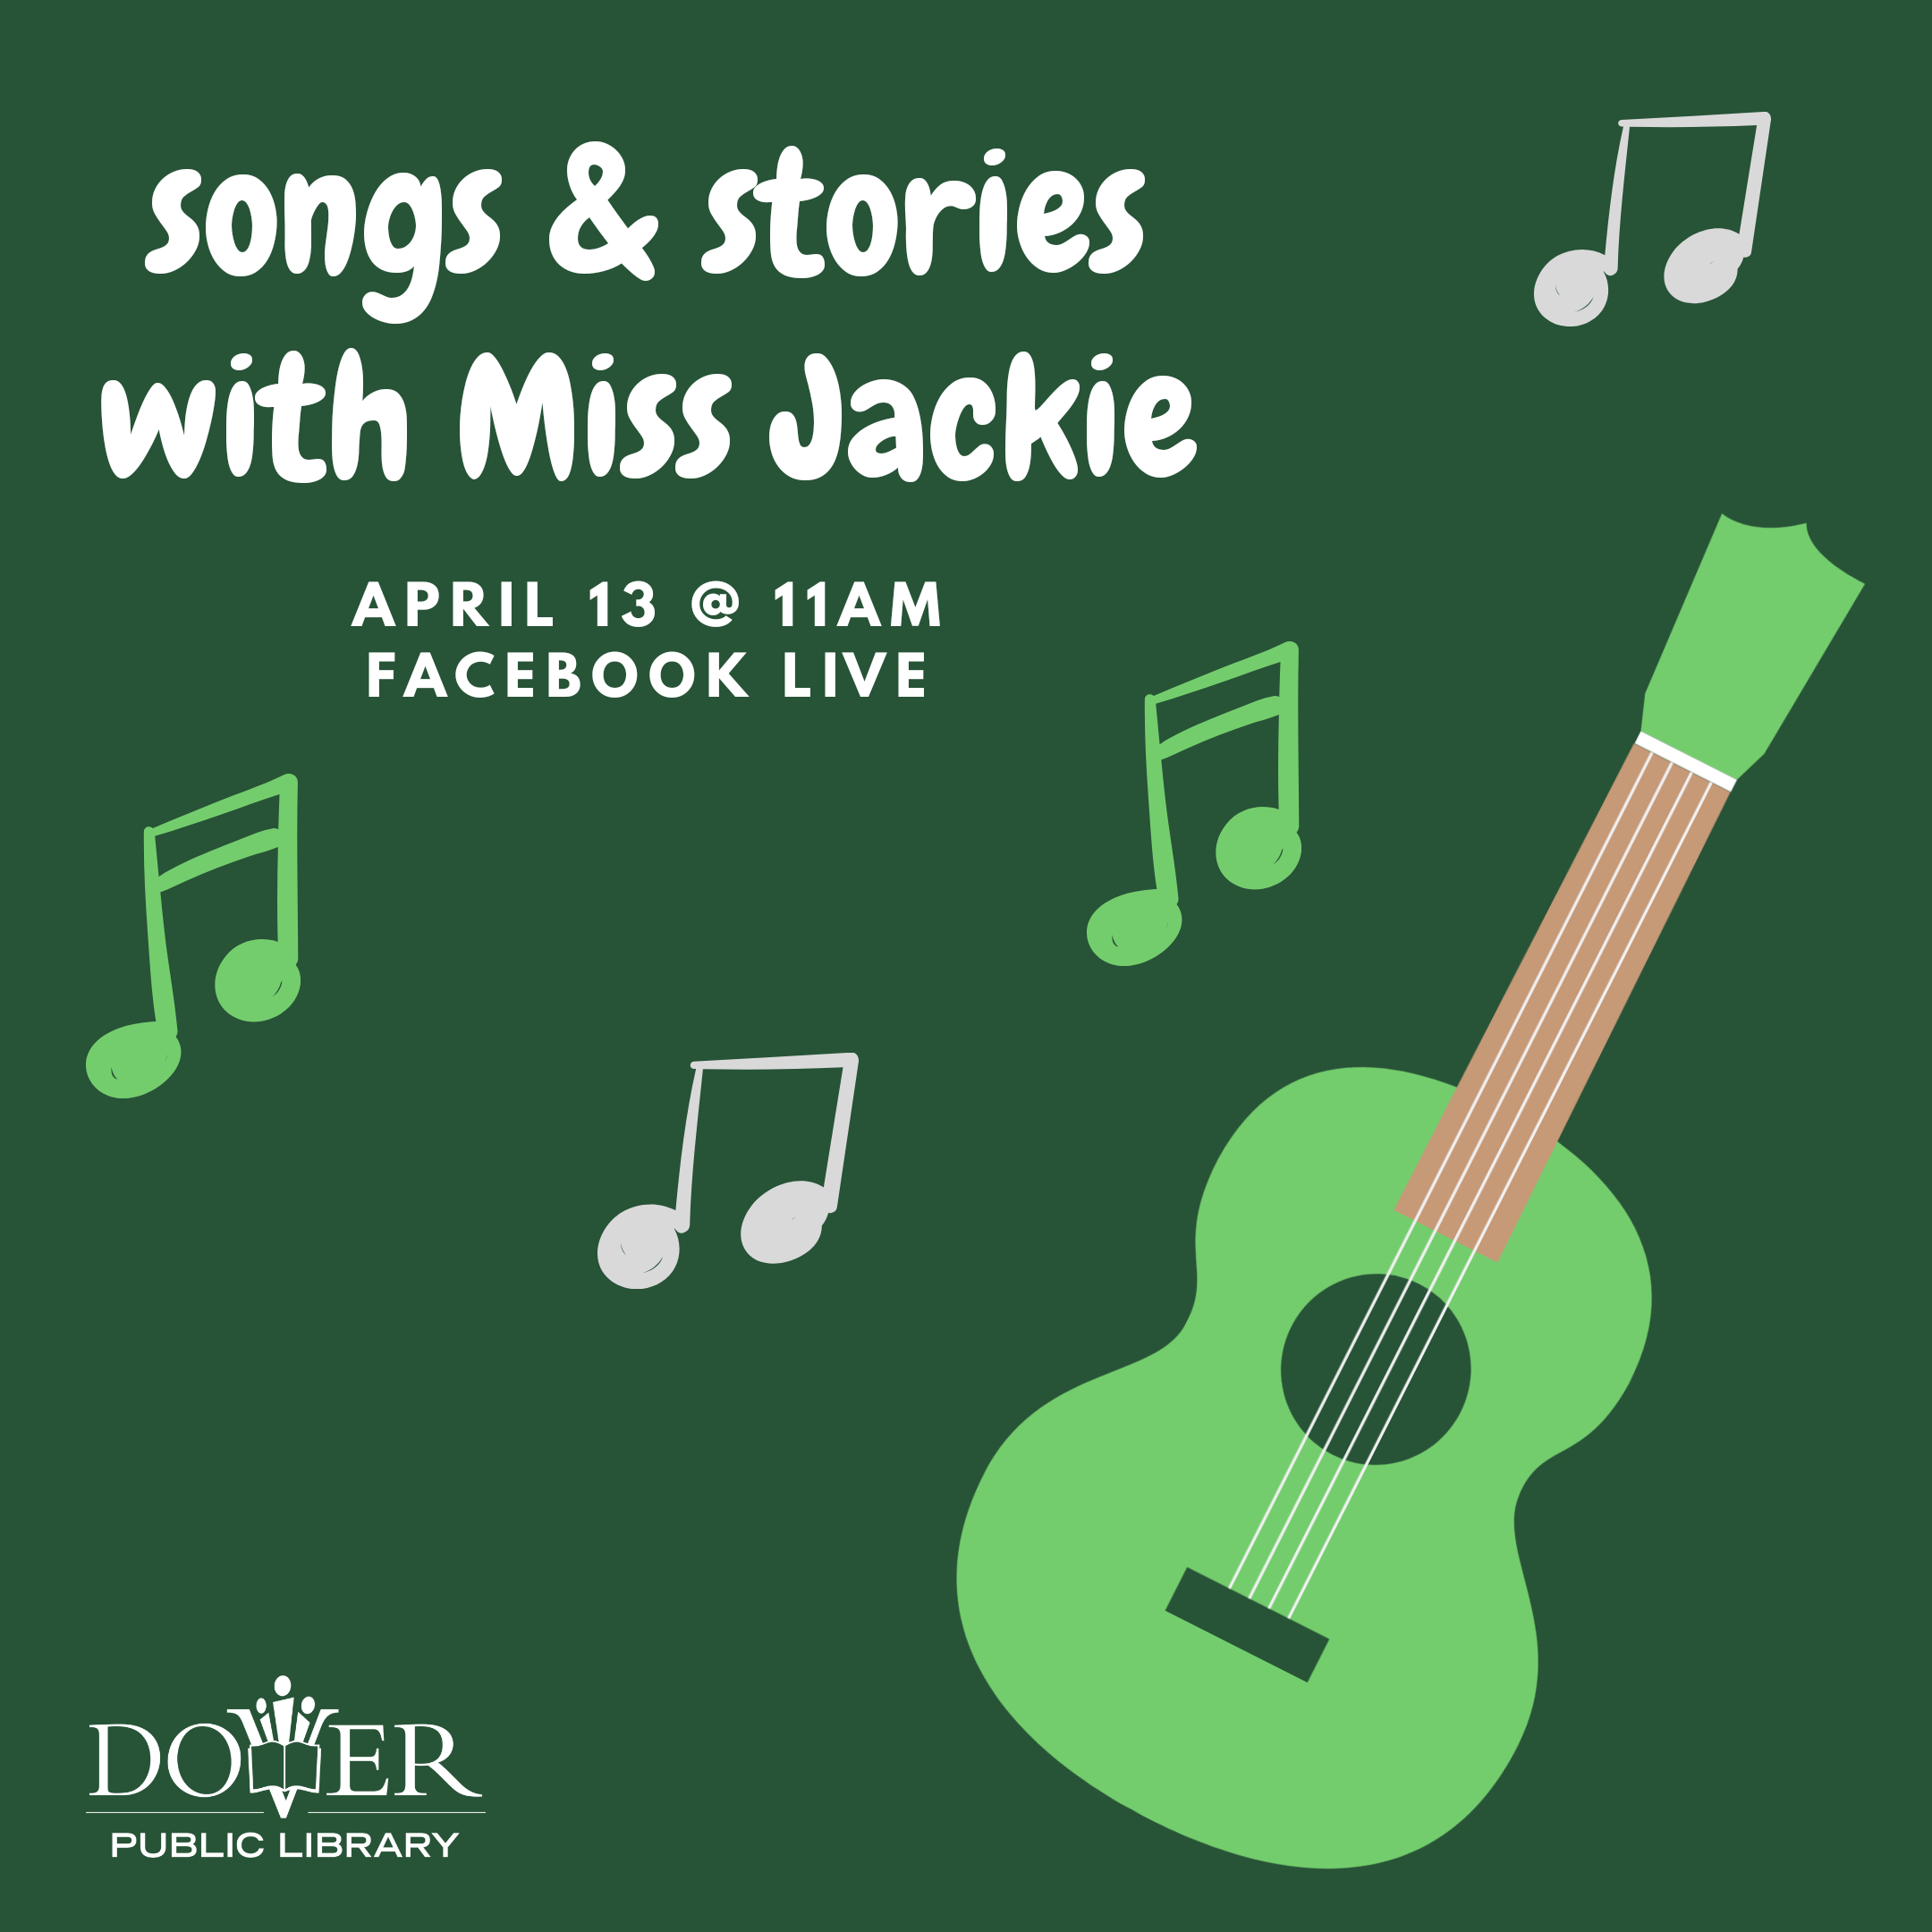 Songs & Stories with Miss Jackie at the Dover Public Library